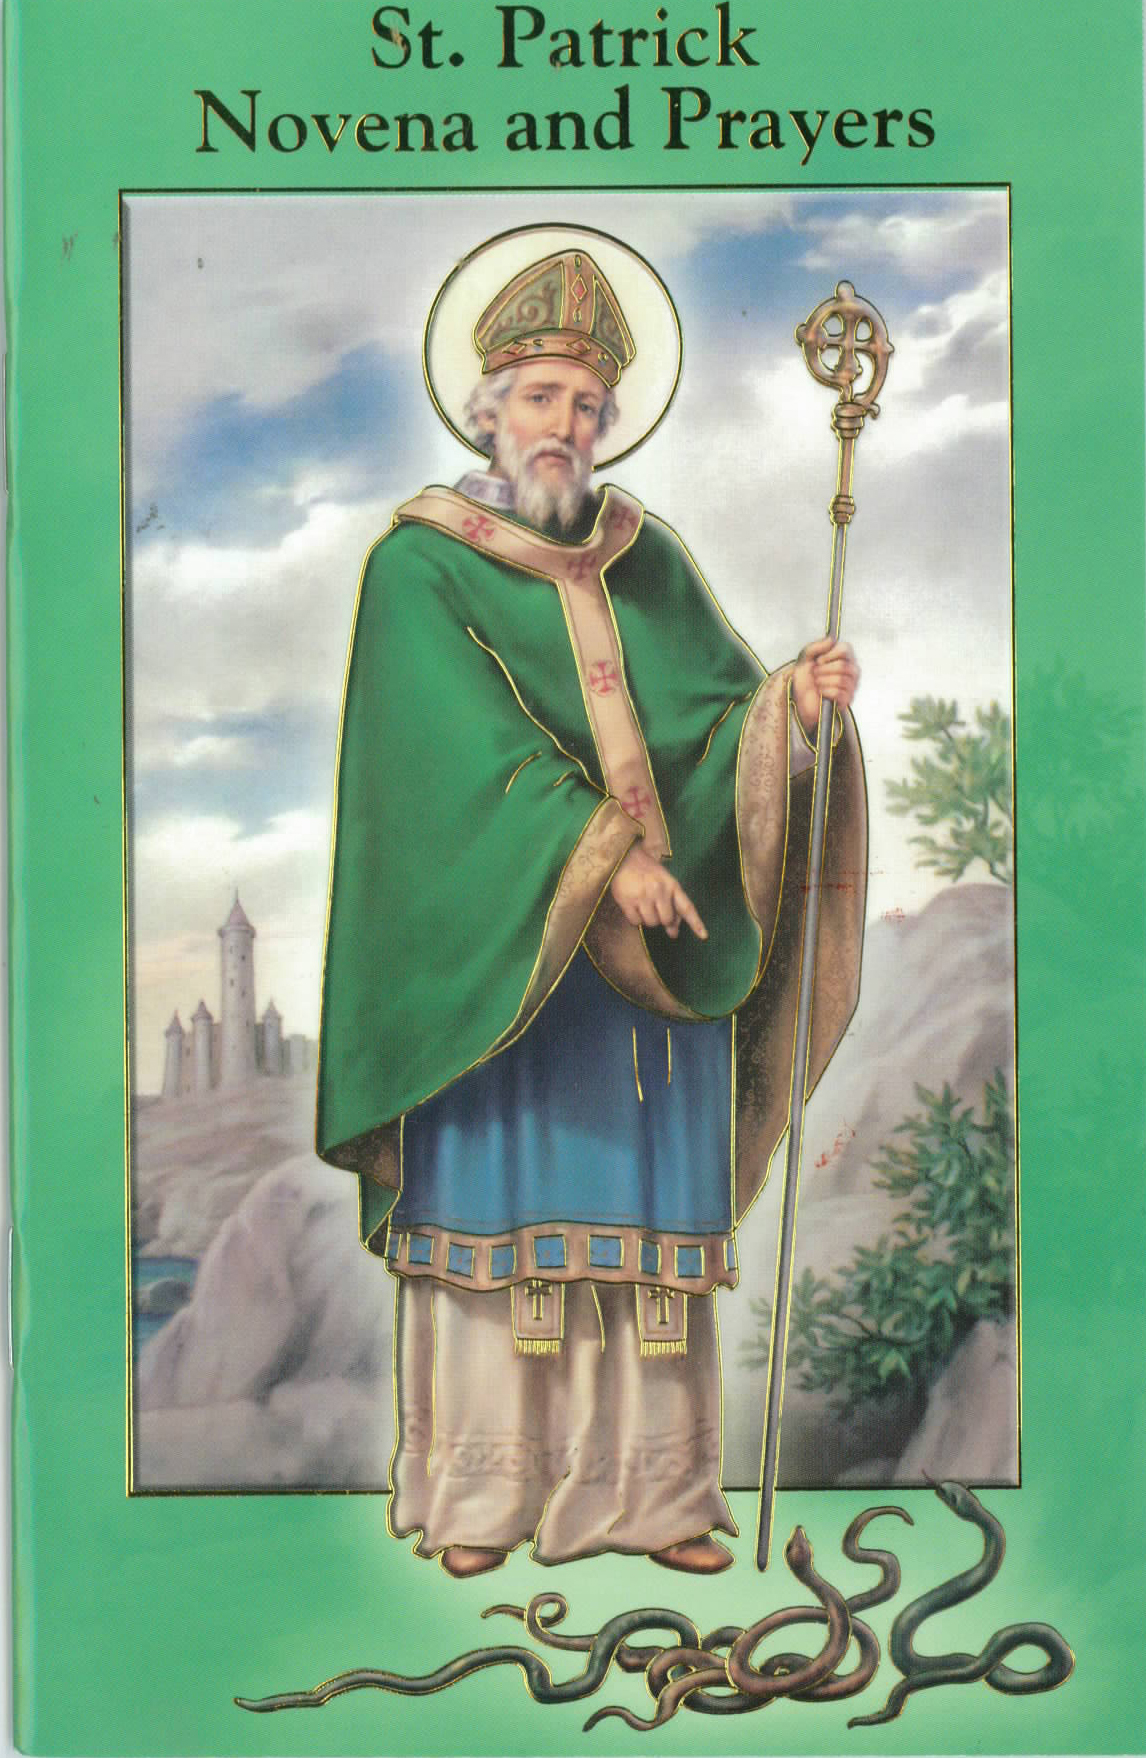 "St. Patrick Novena and Prayers Book 12-2432-640  is 3.75"" x 5-7/8"" and 24 pages beautifully illustrated with Italian Fratelli-Bonella Artwork."